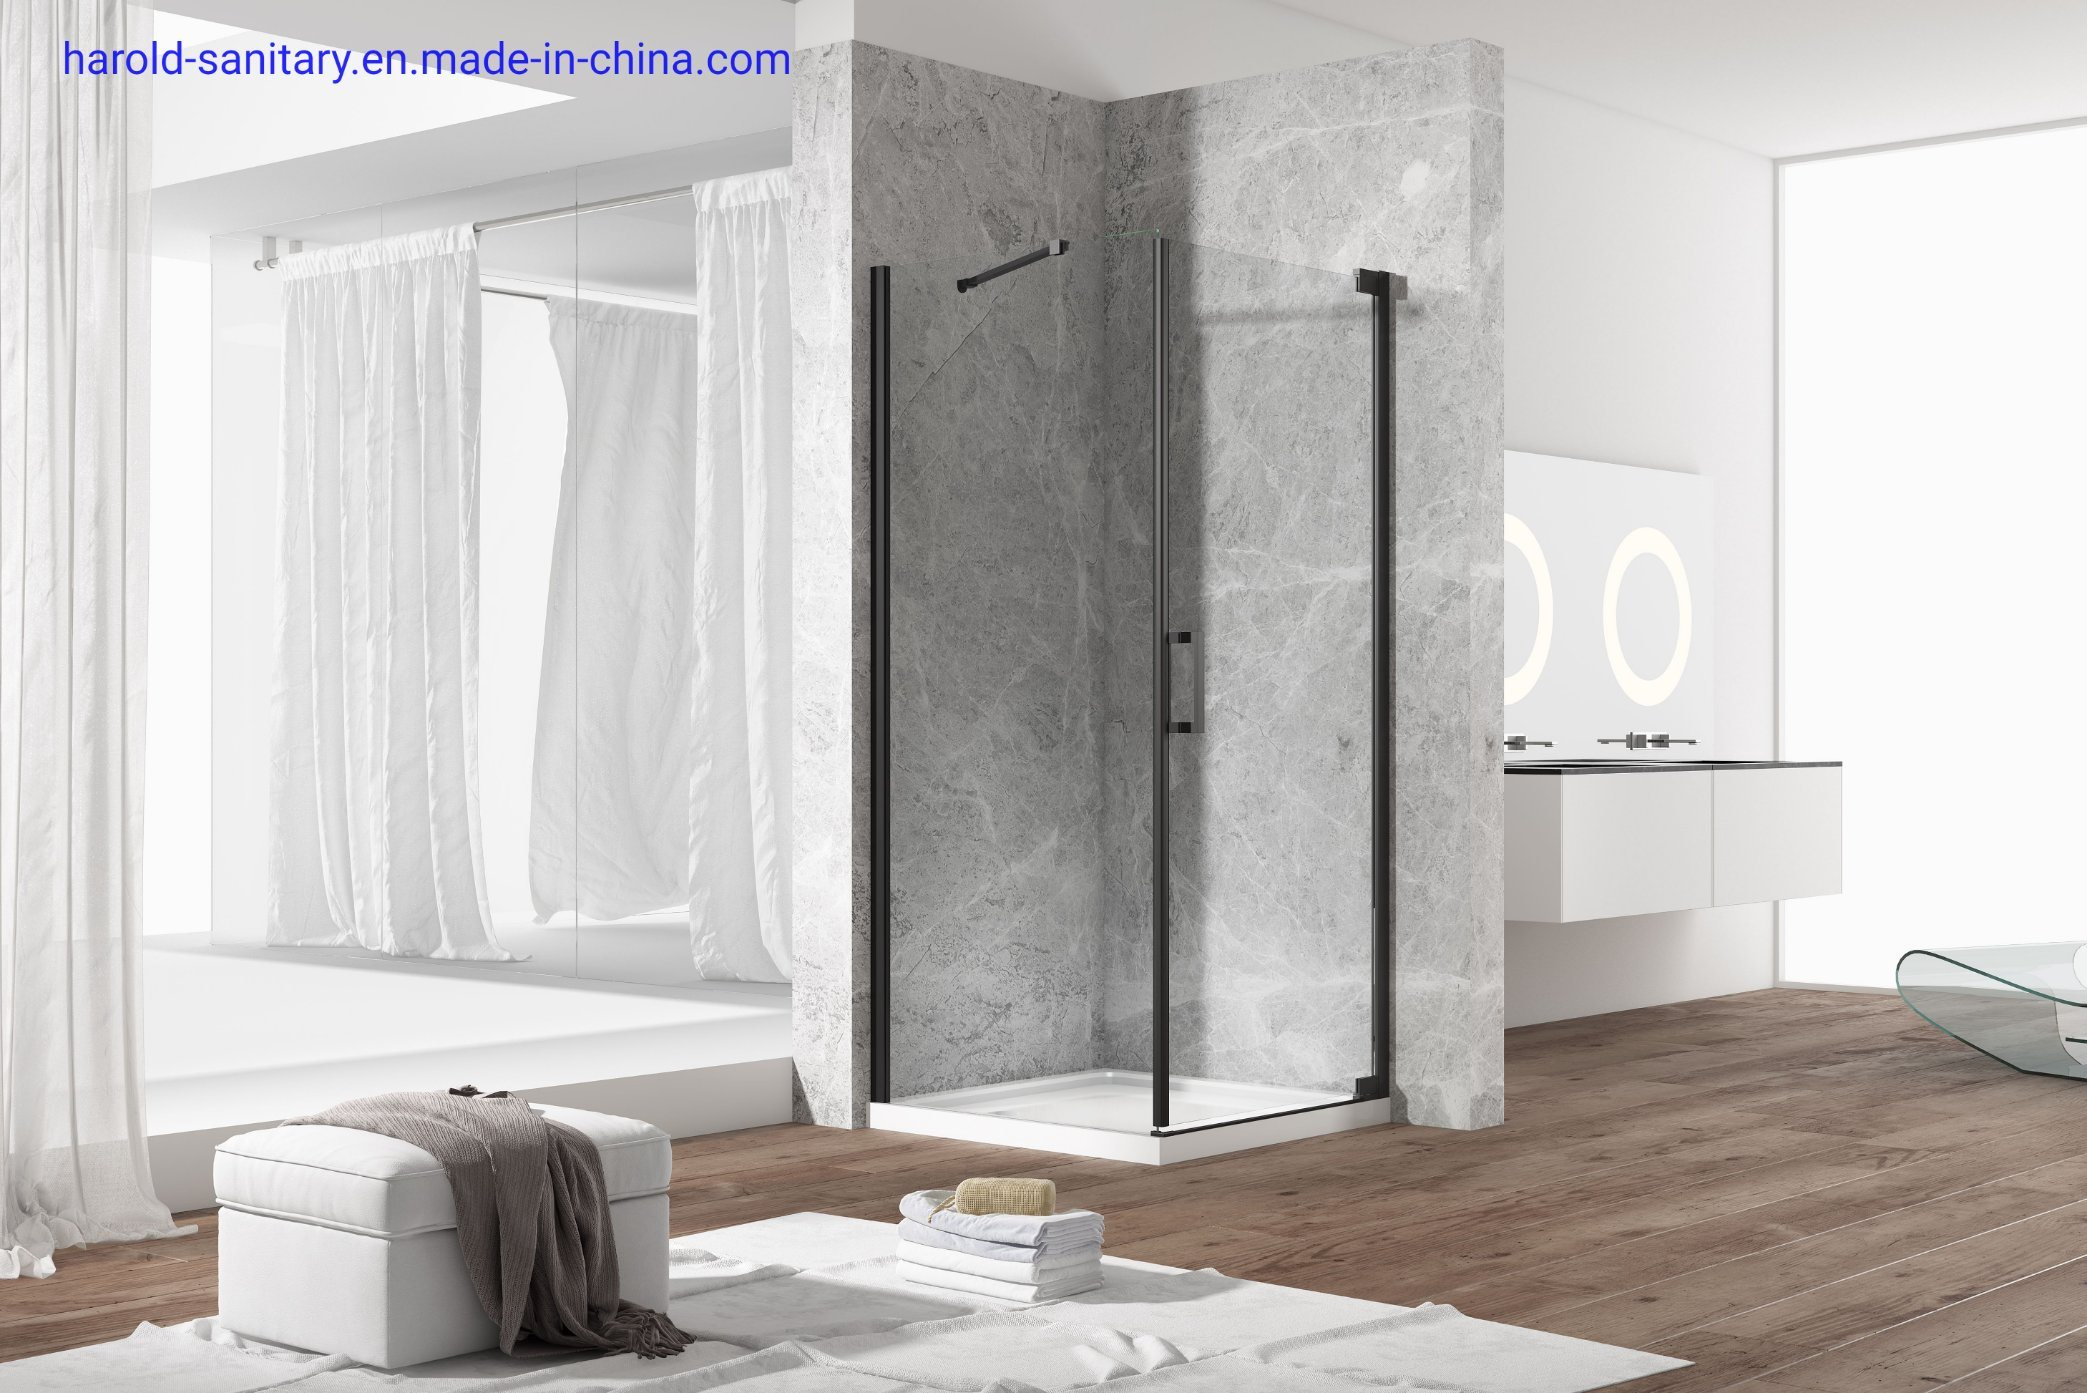 Hot Item Trends Black Pivot Hinge Shower Enclosure For Small Space